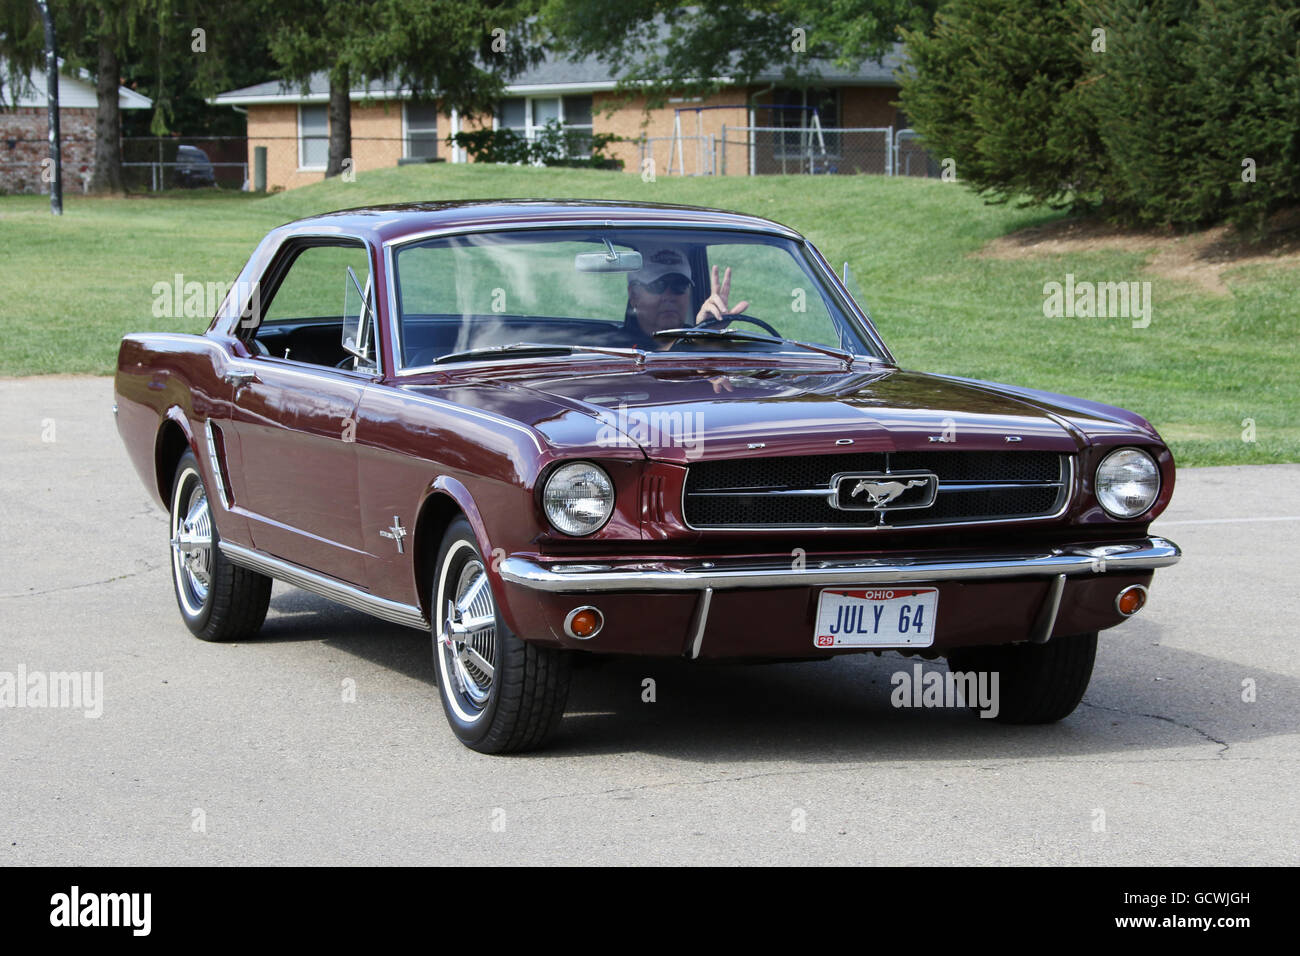 ford mustang 1964 stock photos ford mustang 1964 stock images alamy. Black Bedroom Furniture Sets. Home Design Ideas